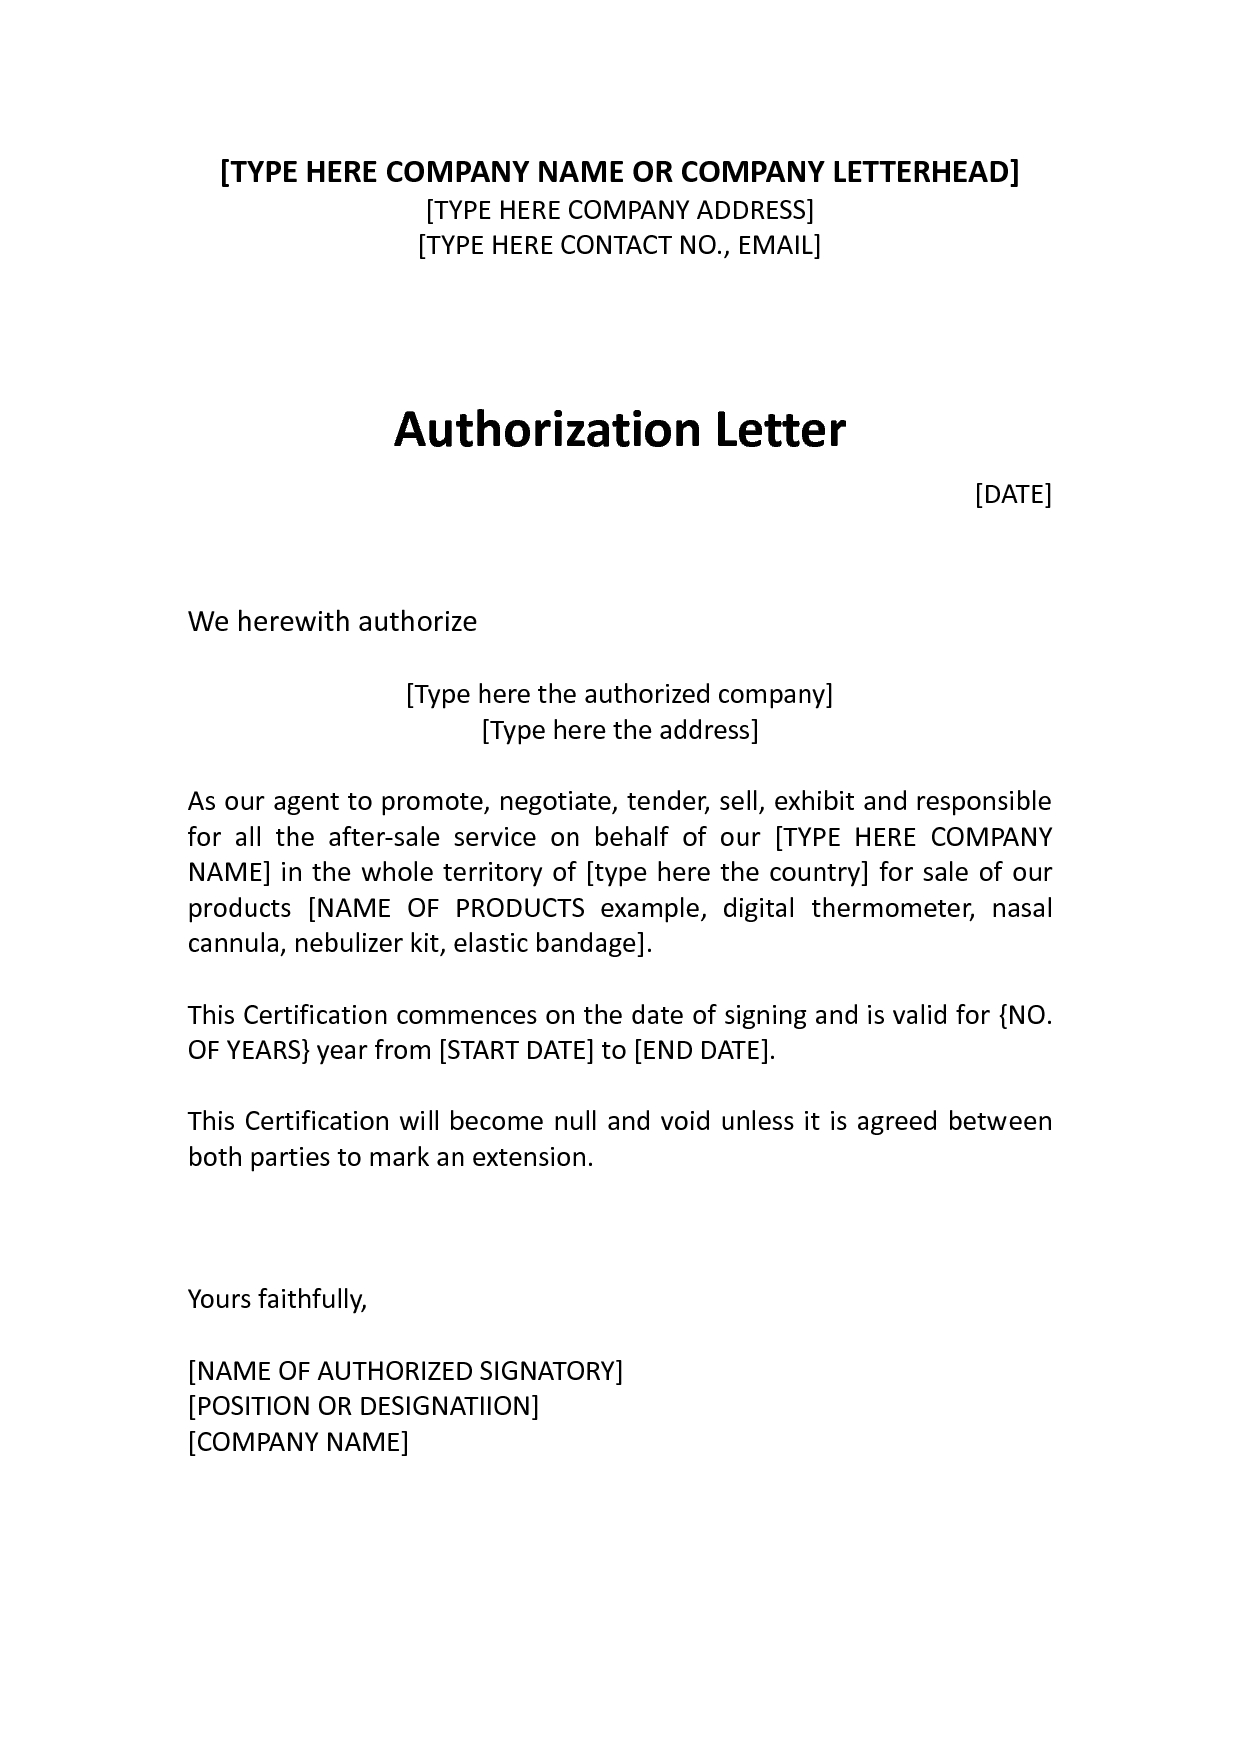 Eviction Letter Template Pdf - Authorization Distributor Letter Sample Distributor Dealer